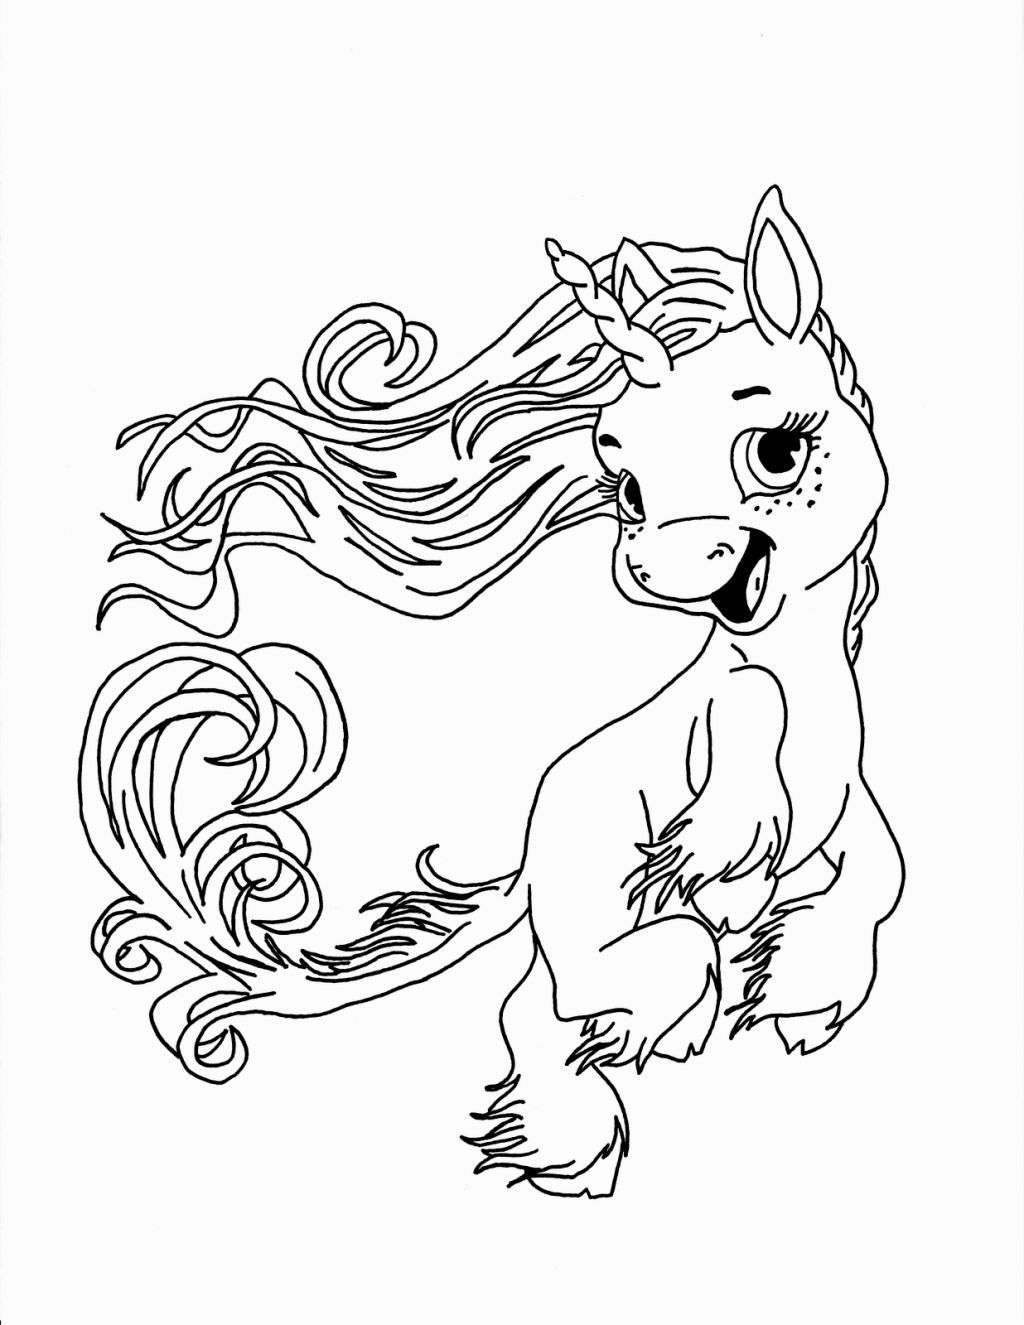 Unicorn coloring pages to print - Printable Unicorn Coloring Pages